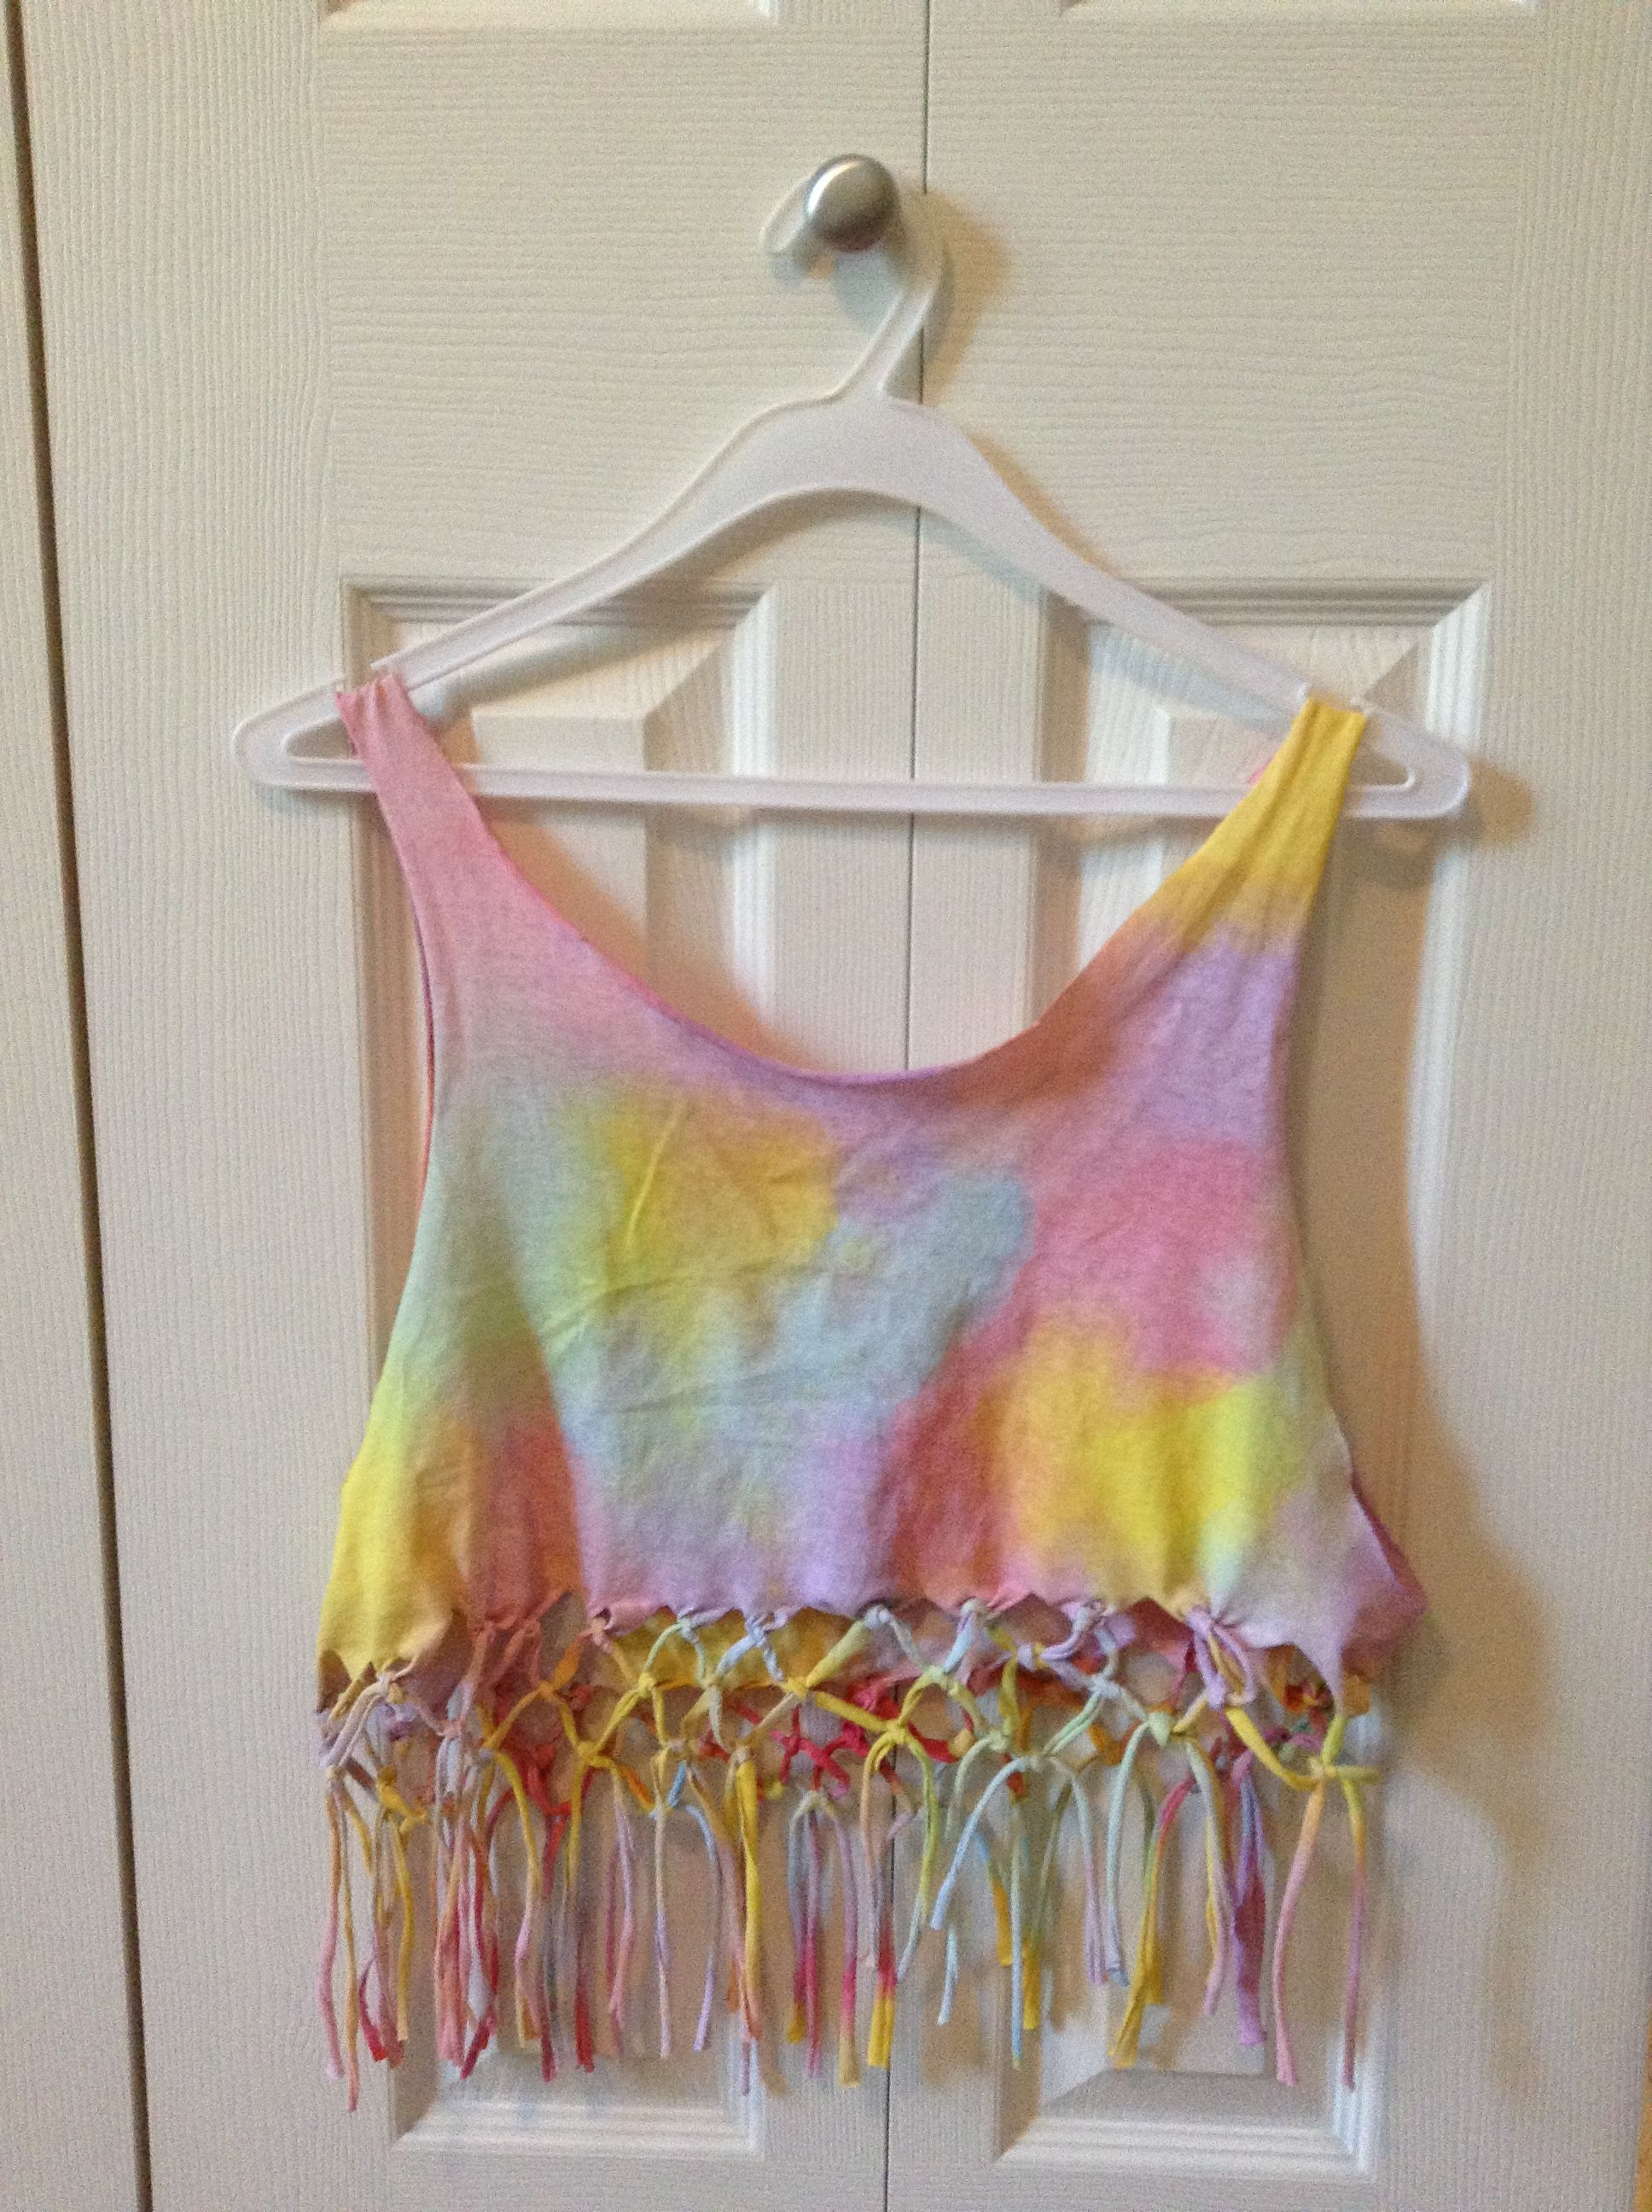 Diy Knotted Fringe Crop Top This Would Be Amazing Inspiration For My Project Rave Outfits Diy Diy Crop Top Diy Fashion